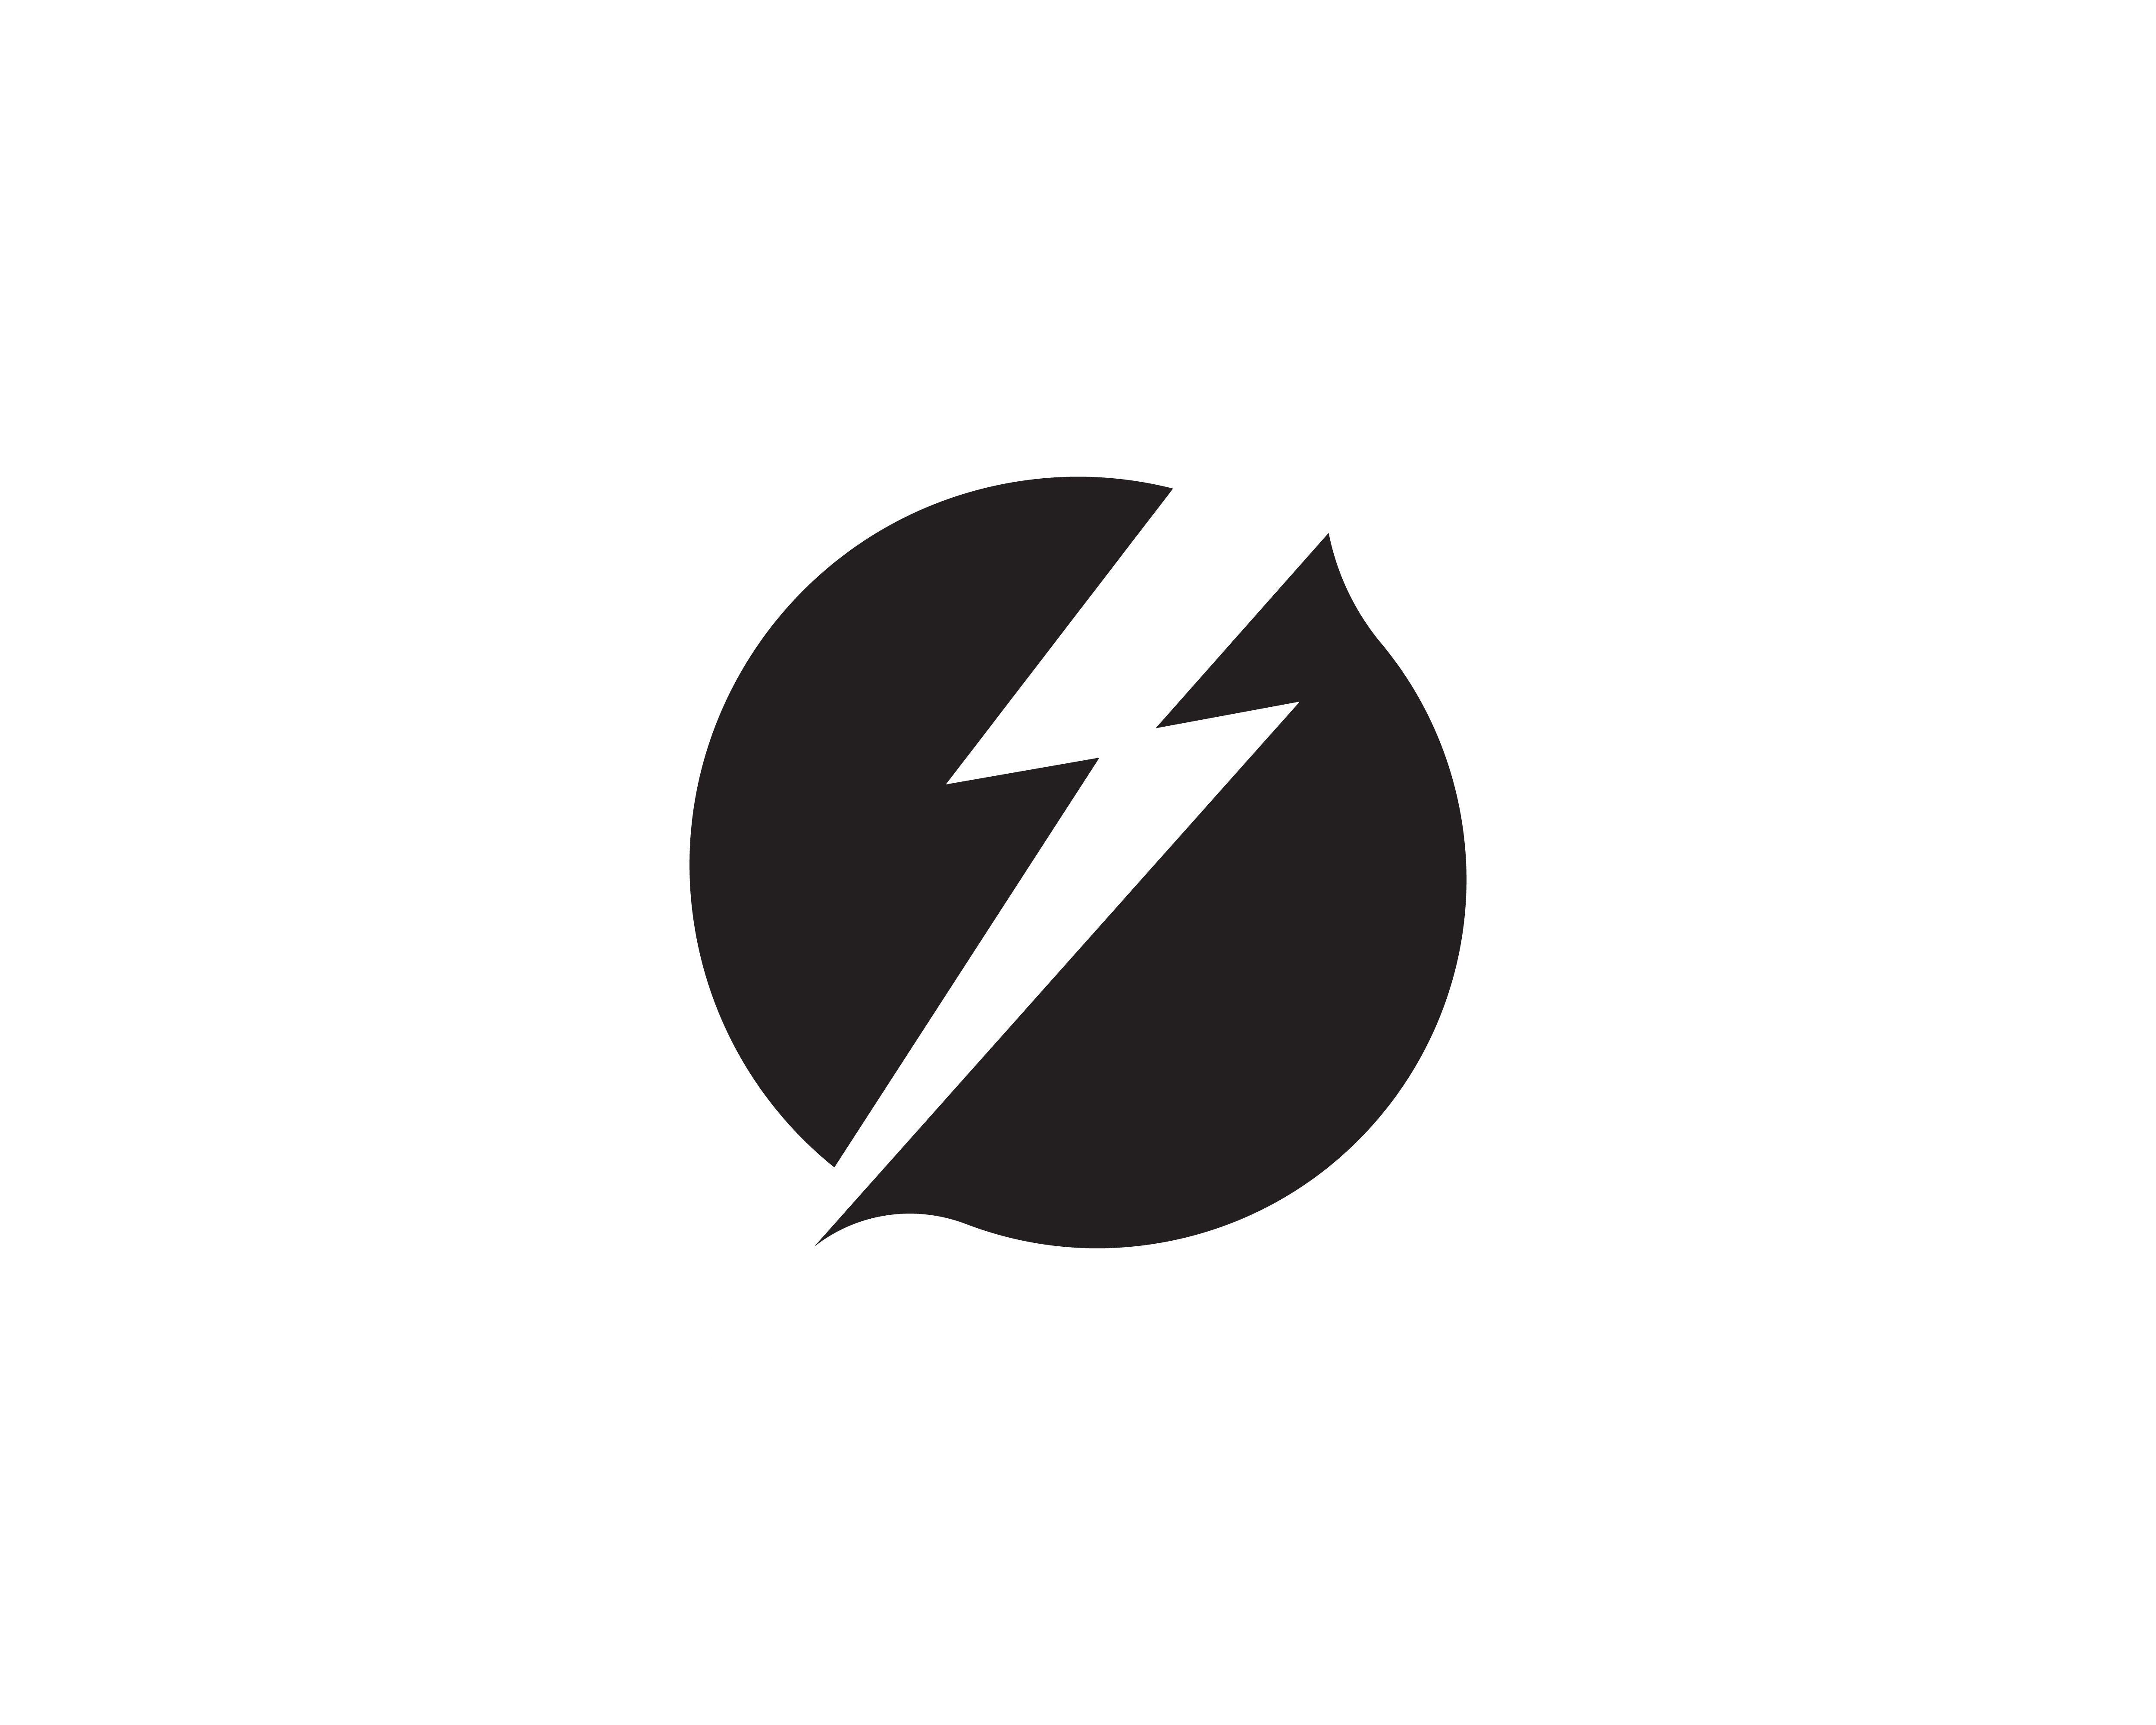 lightning logo icon and symbol - Download Free Vectors ...